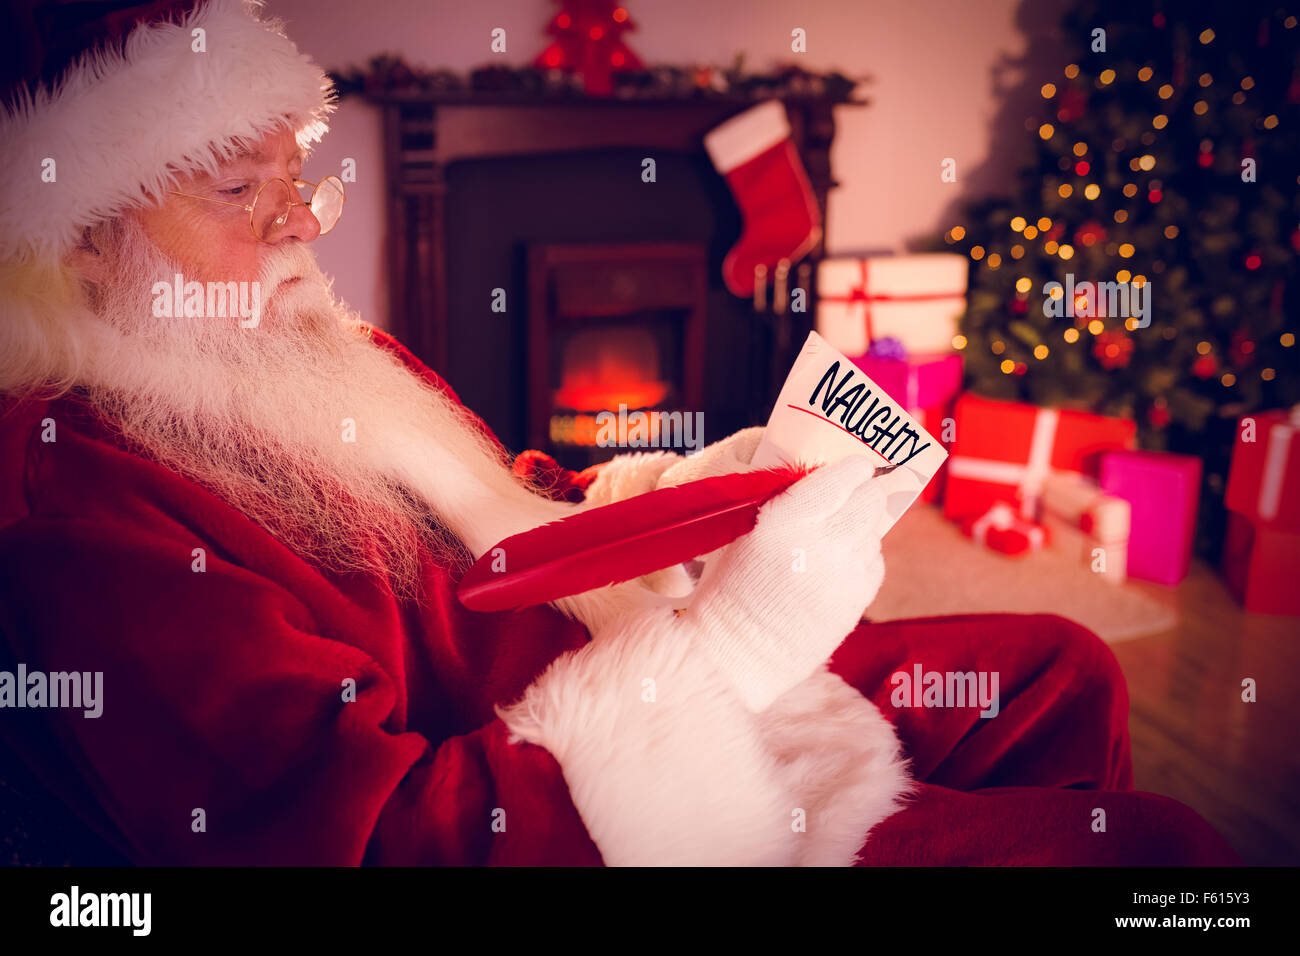 Composite image of naughty or nice - Stock Image